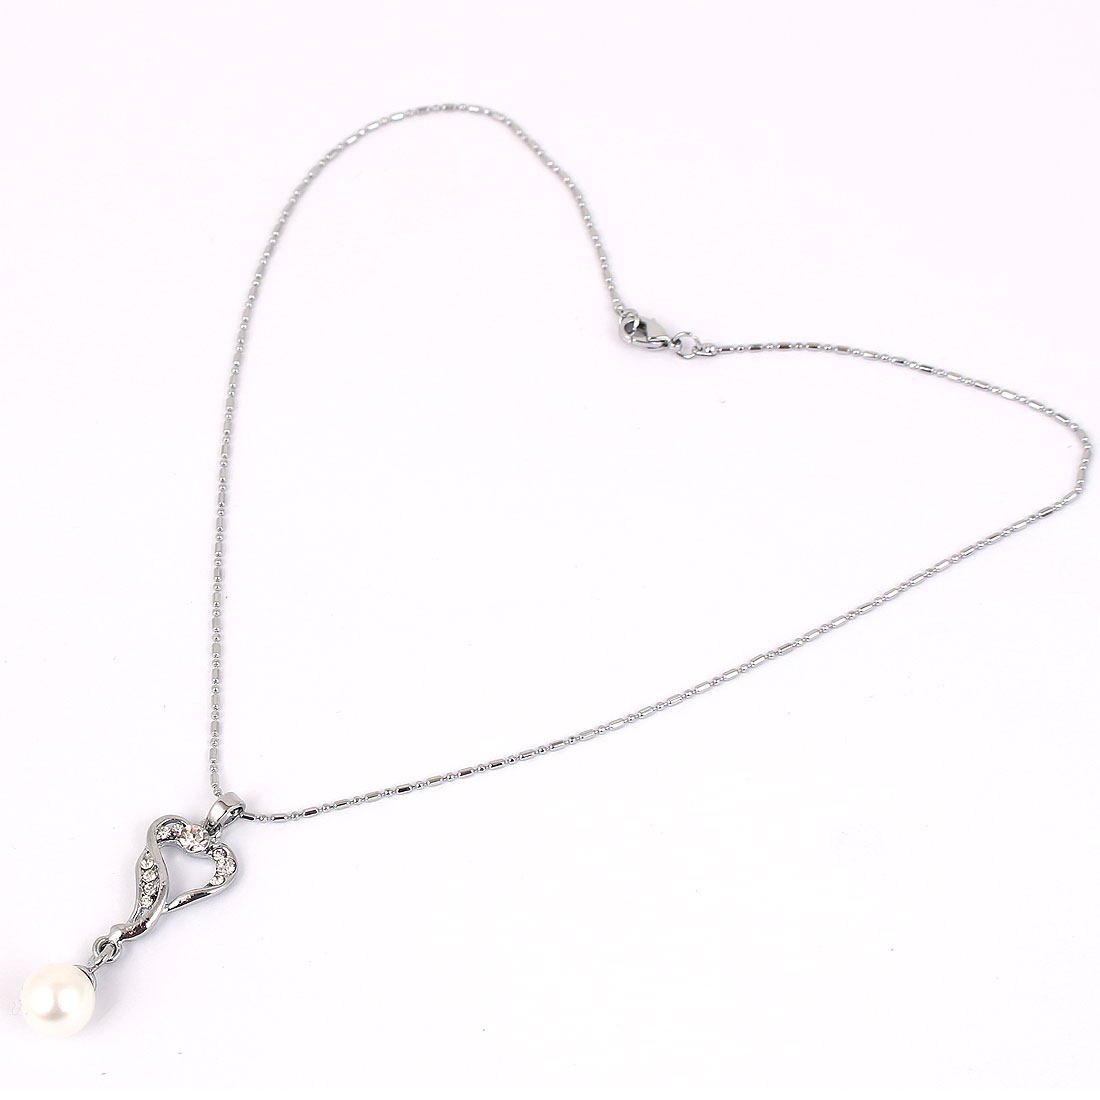 Faux Rhinestones Inlaid Plastic Imitation Pearl Heart Pendant Metal Chain Necklace